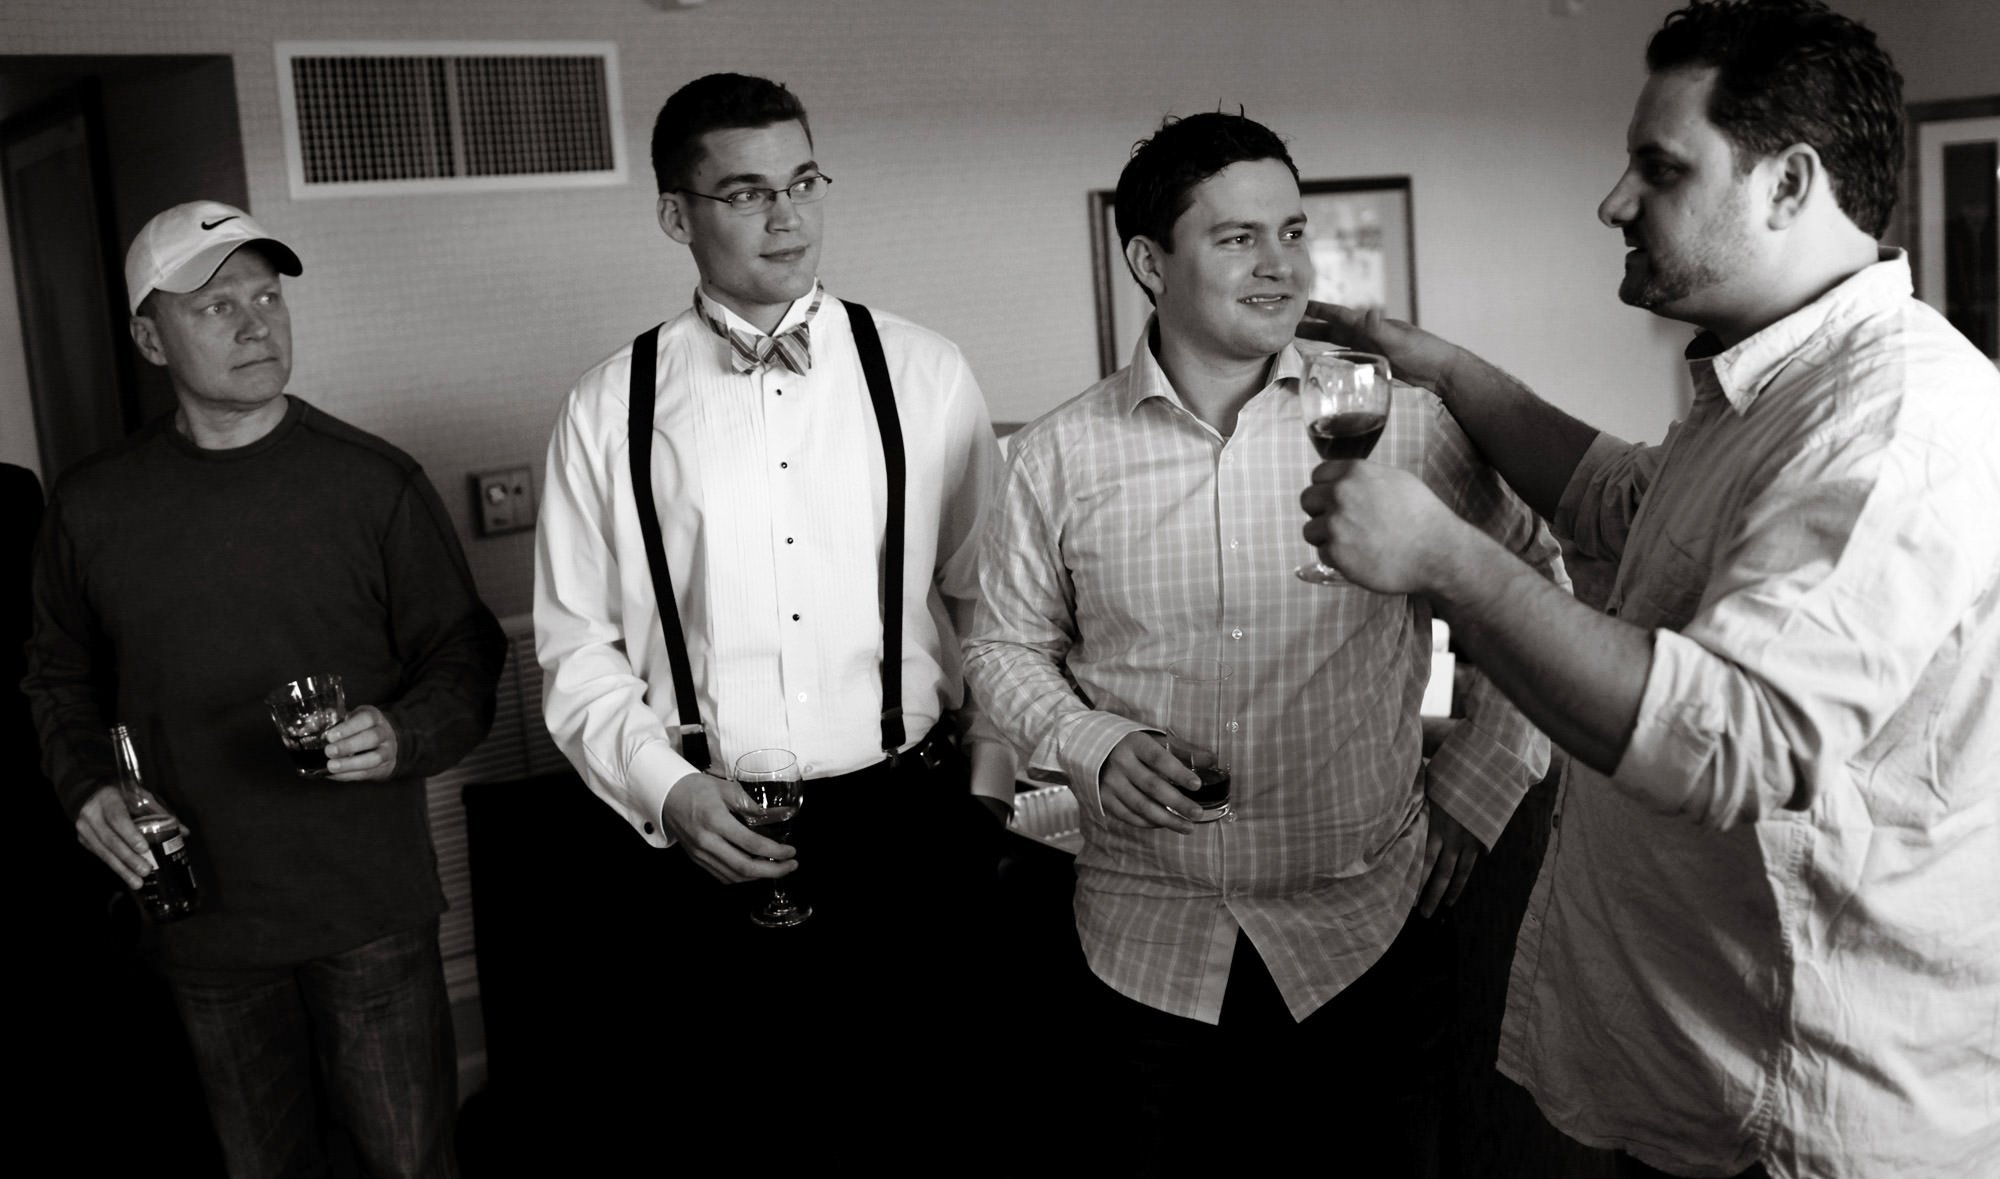 The groomsmen toast to the groom on his wedding day.